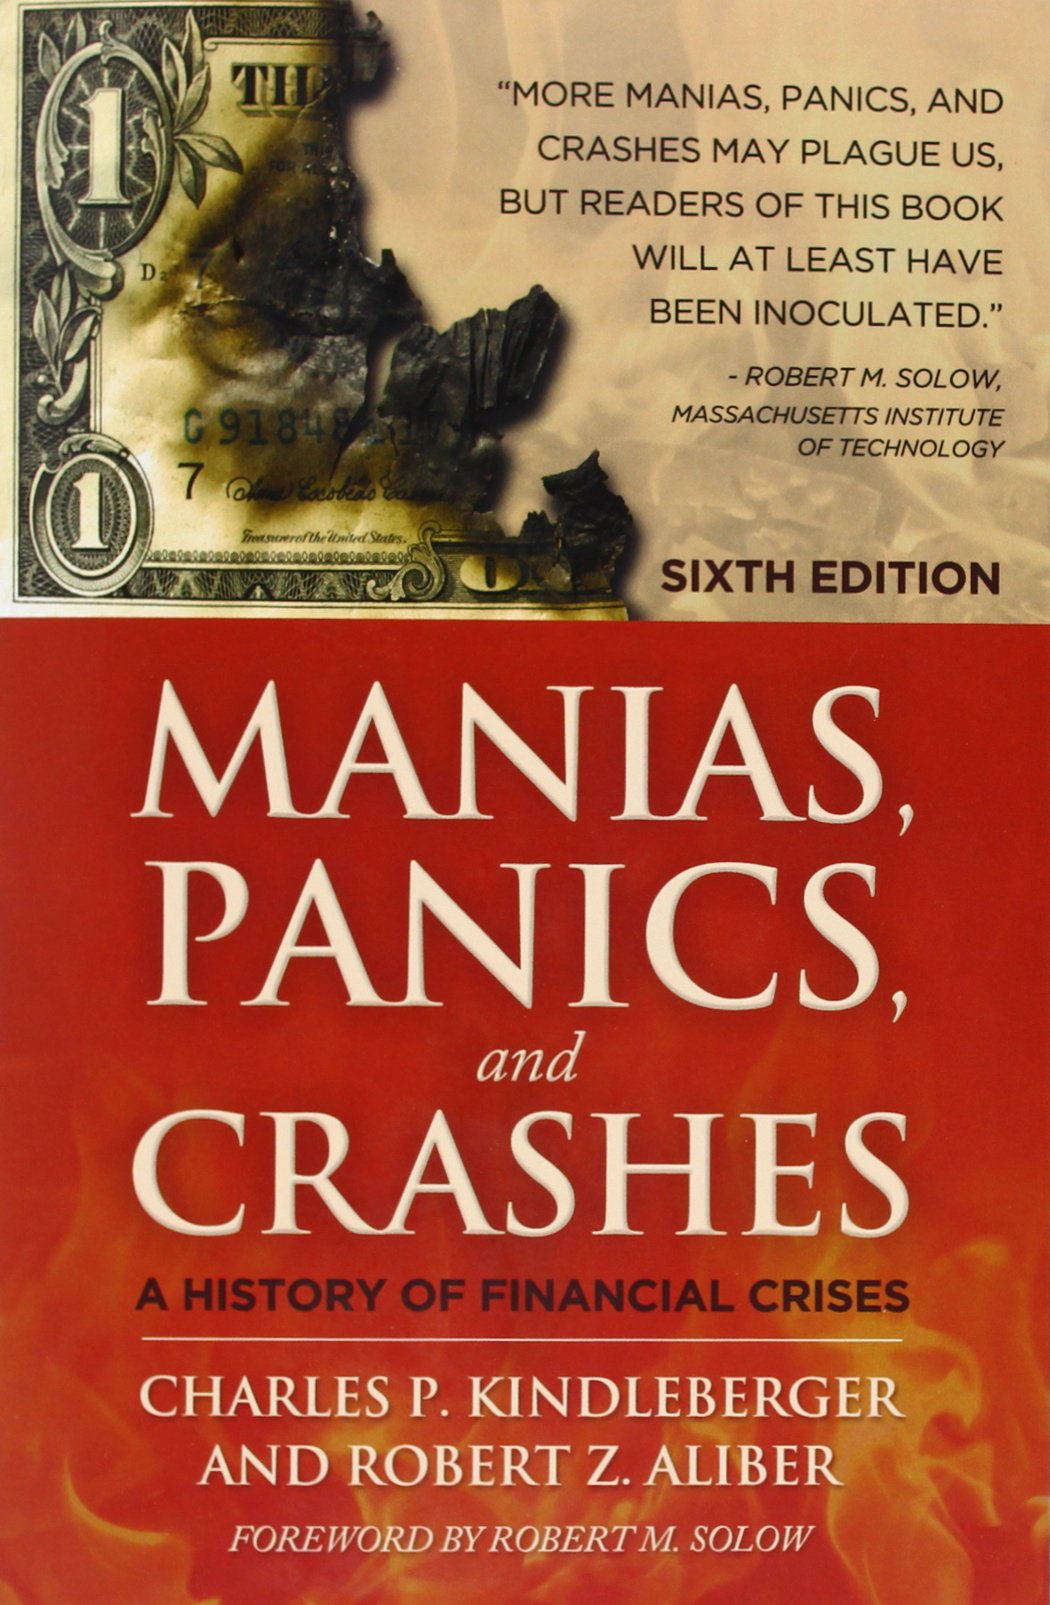 Manias, Panics, and Crashes - A History of Financial Crises (Third Edition) - Charles P. Kindleberger